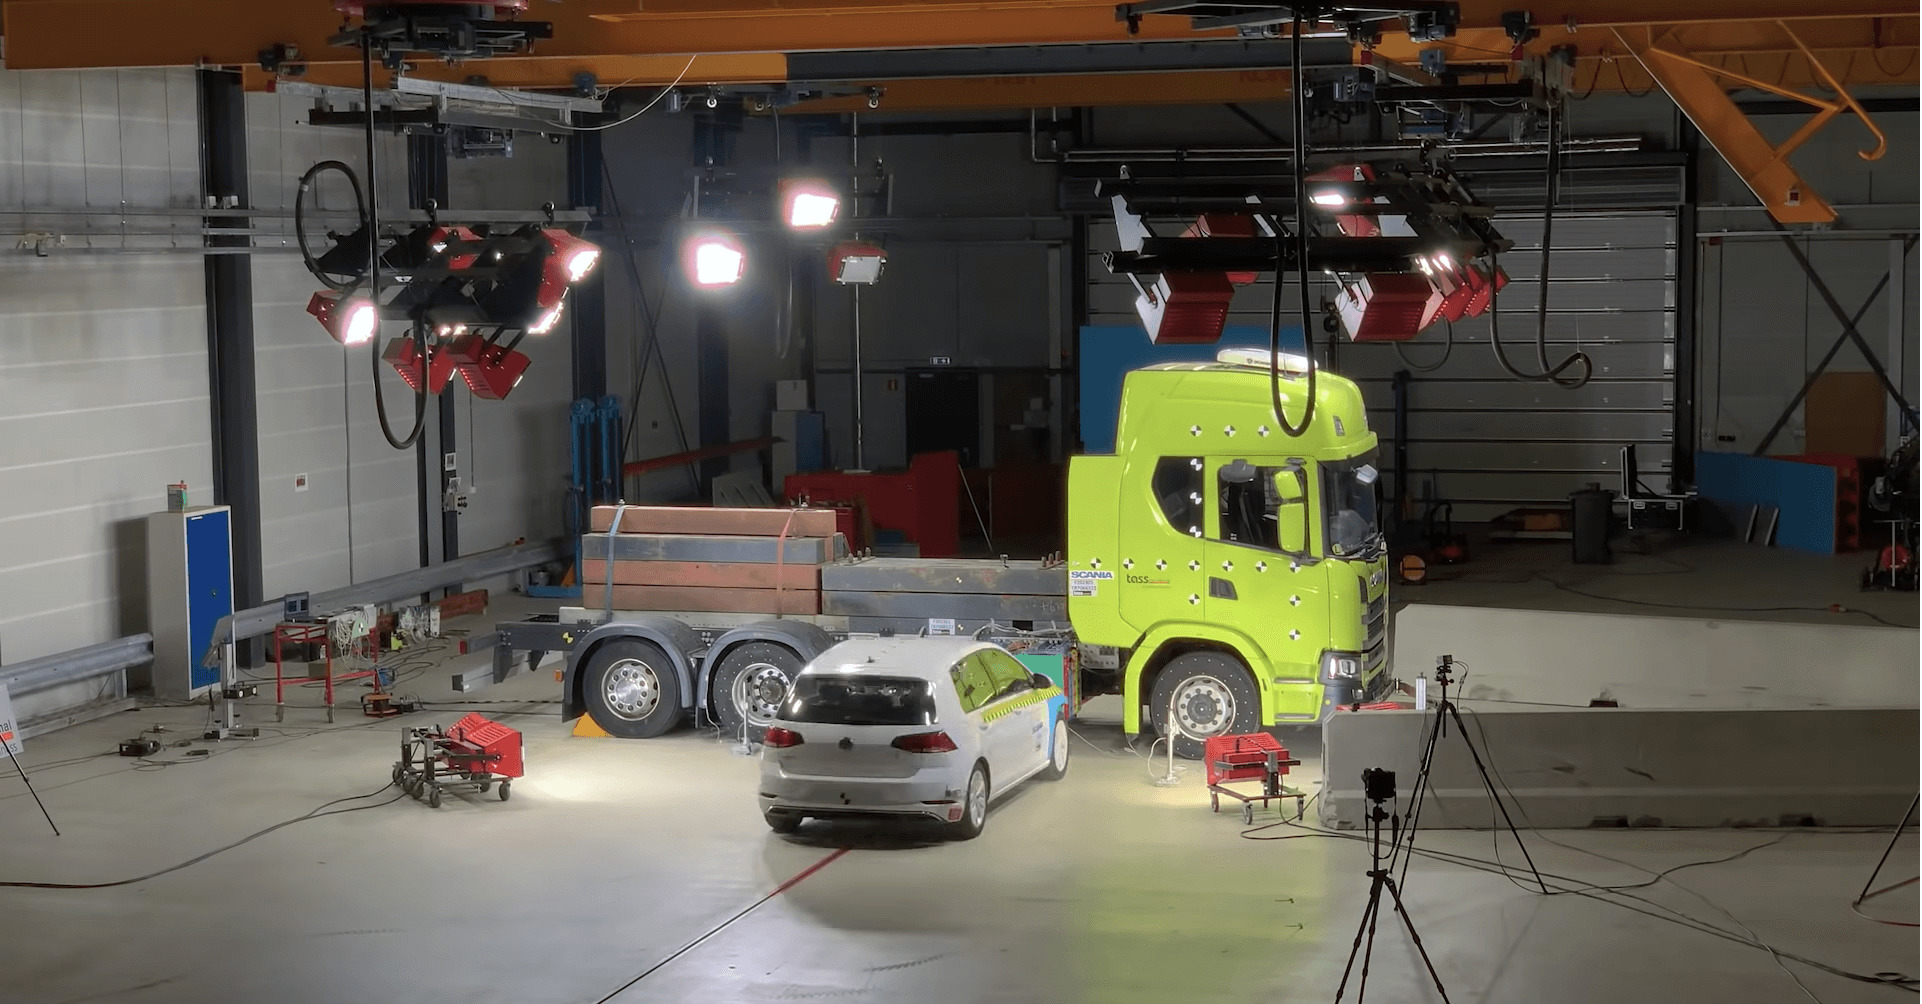 Scania crash test